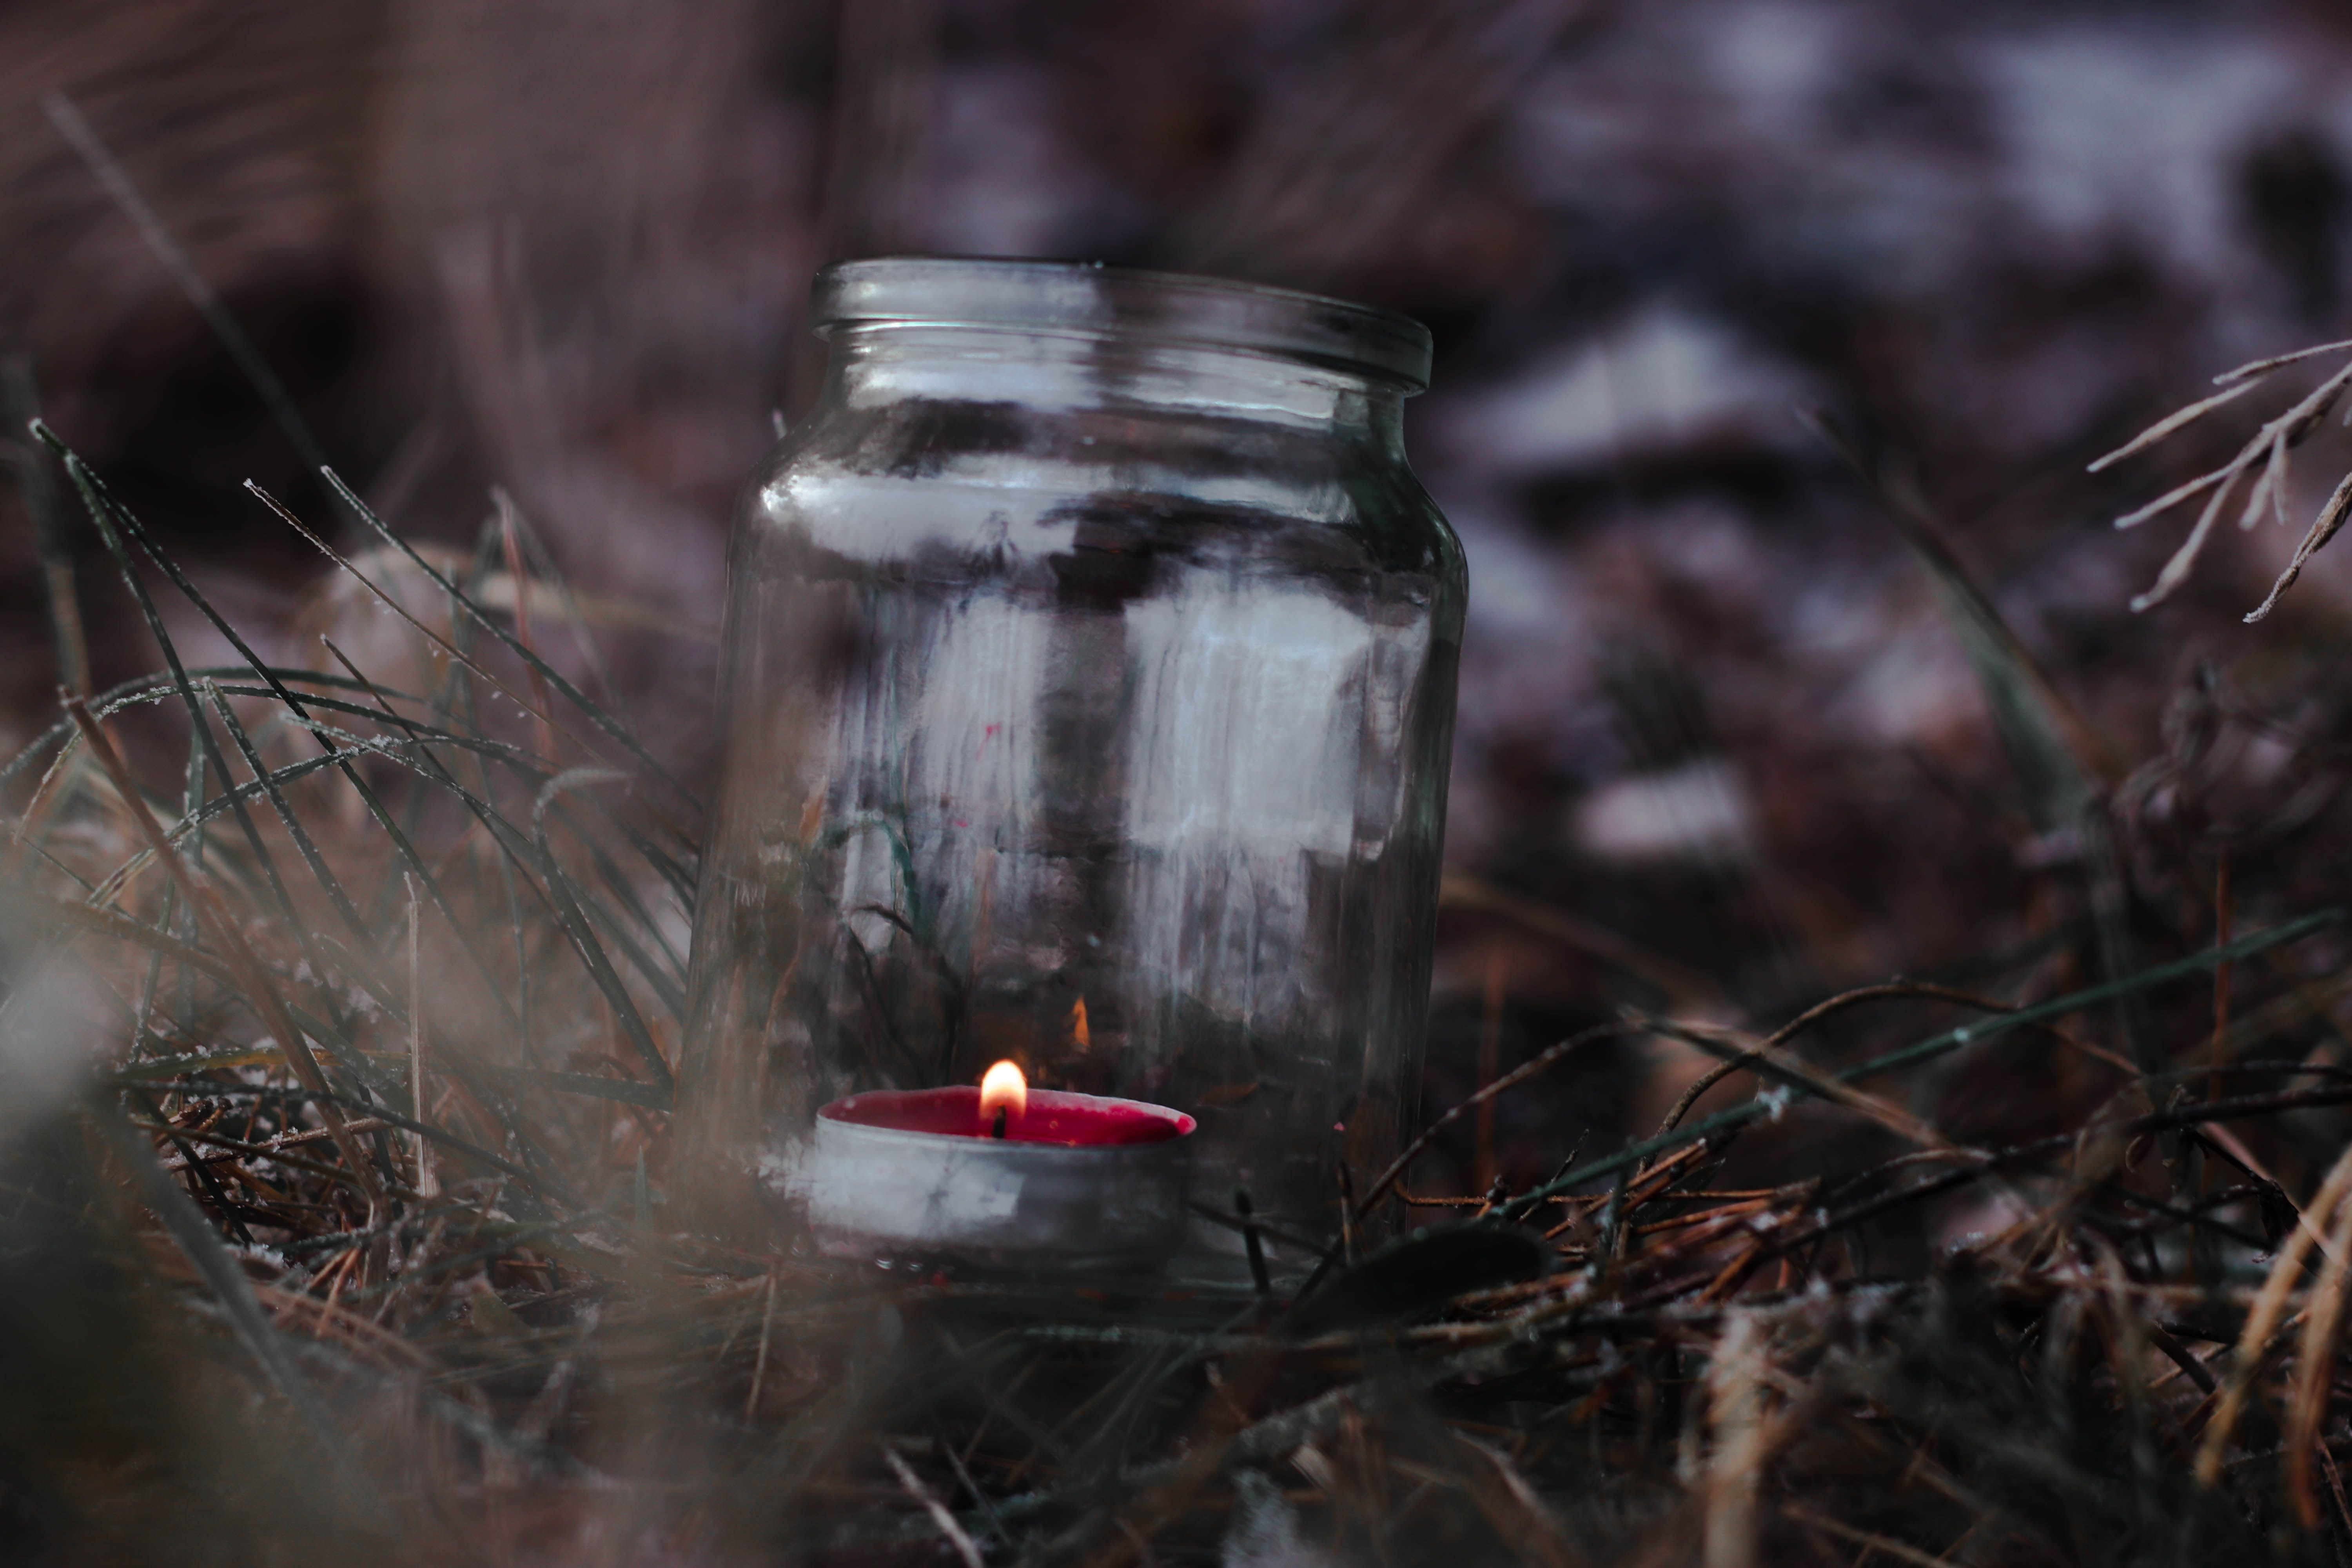 Lighted Red Tealight in Glass Mason Jar